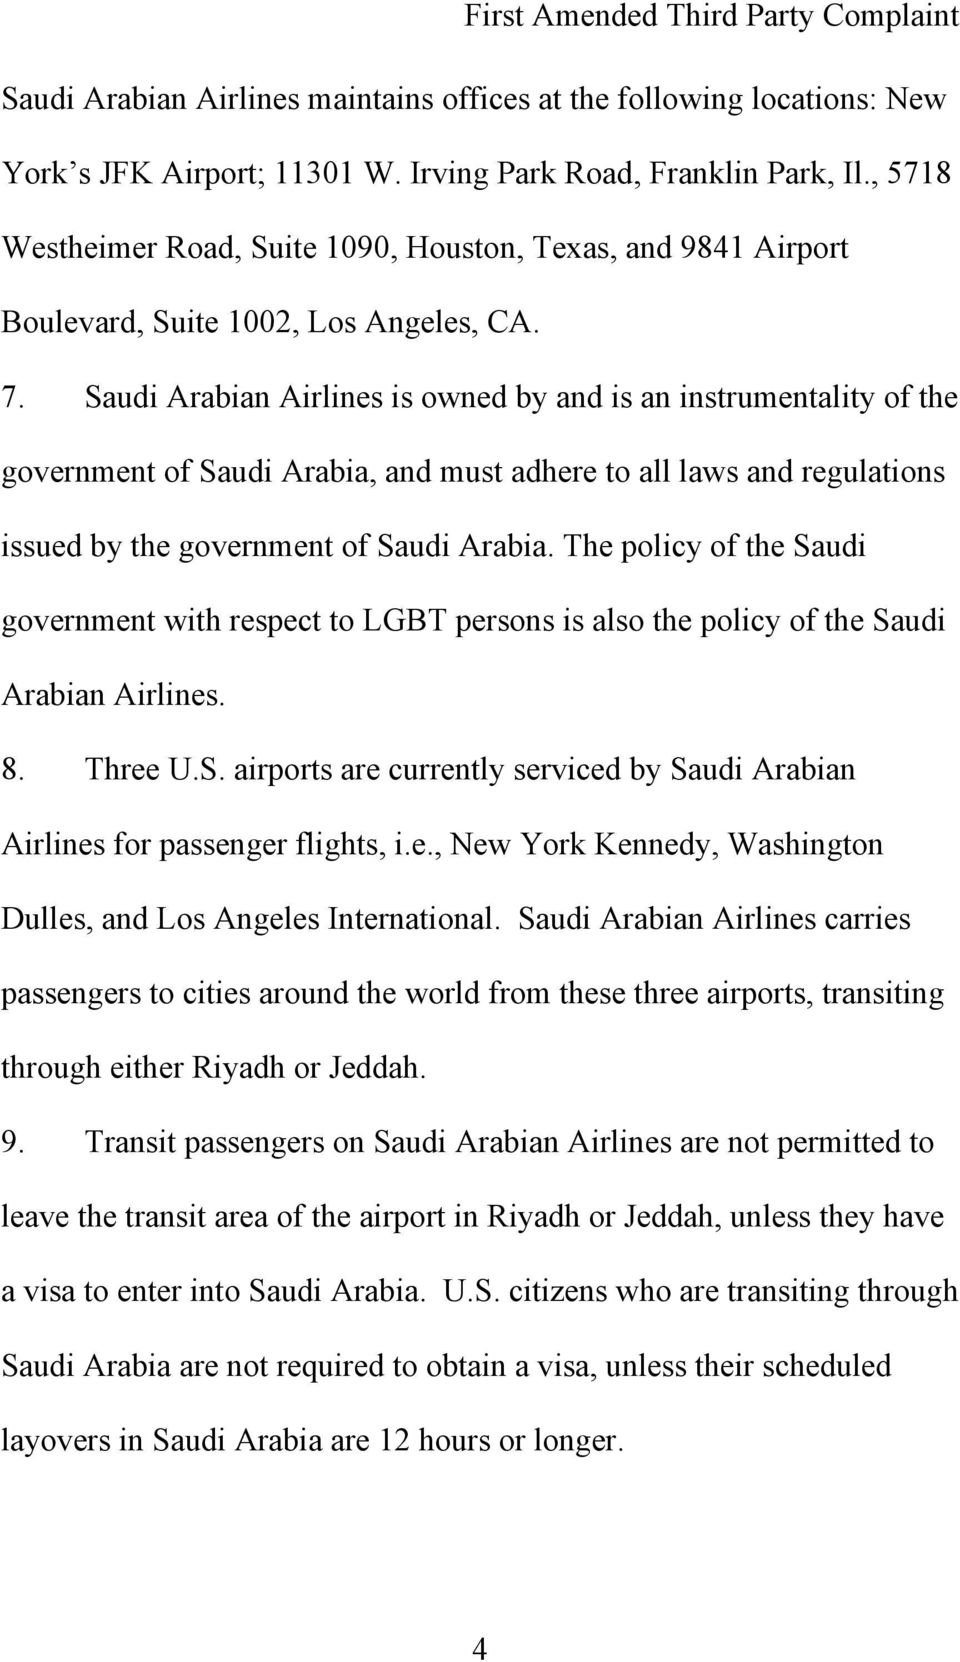 Saudi Arabian Airlines is owned by and is an instrumentality of the government of Saudi Arabia, and must adhere to all laws and regulations issued by the government of Saudi Arabia.